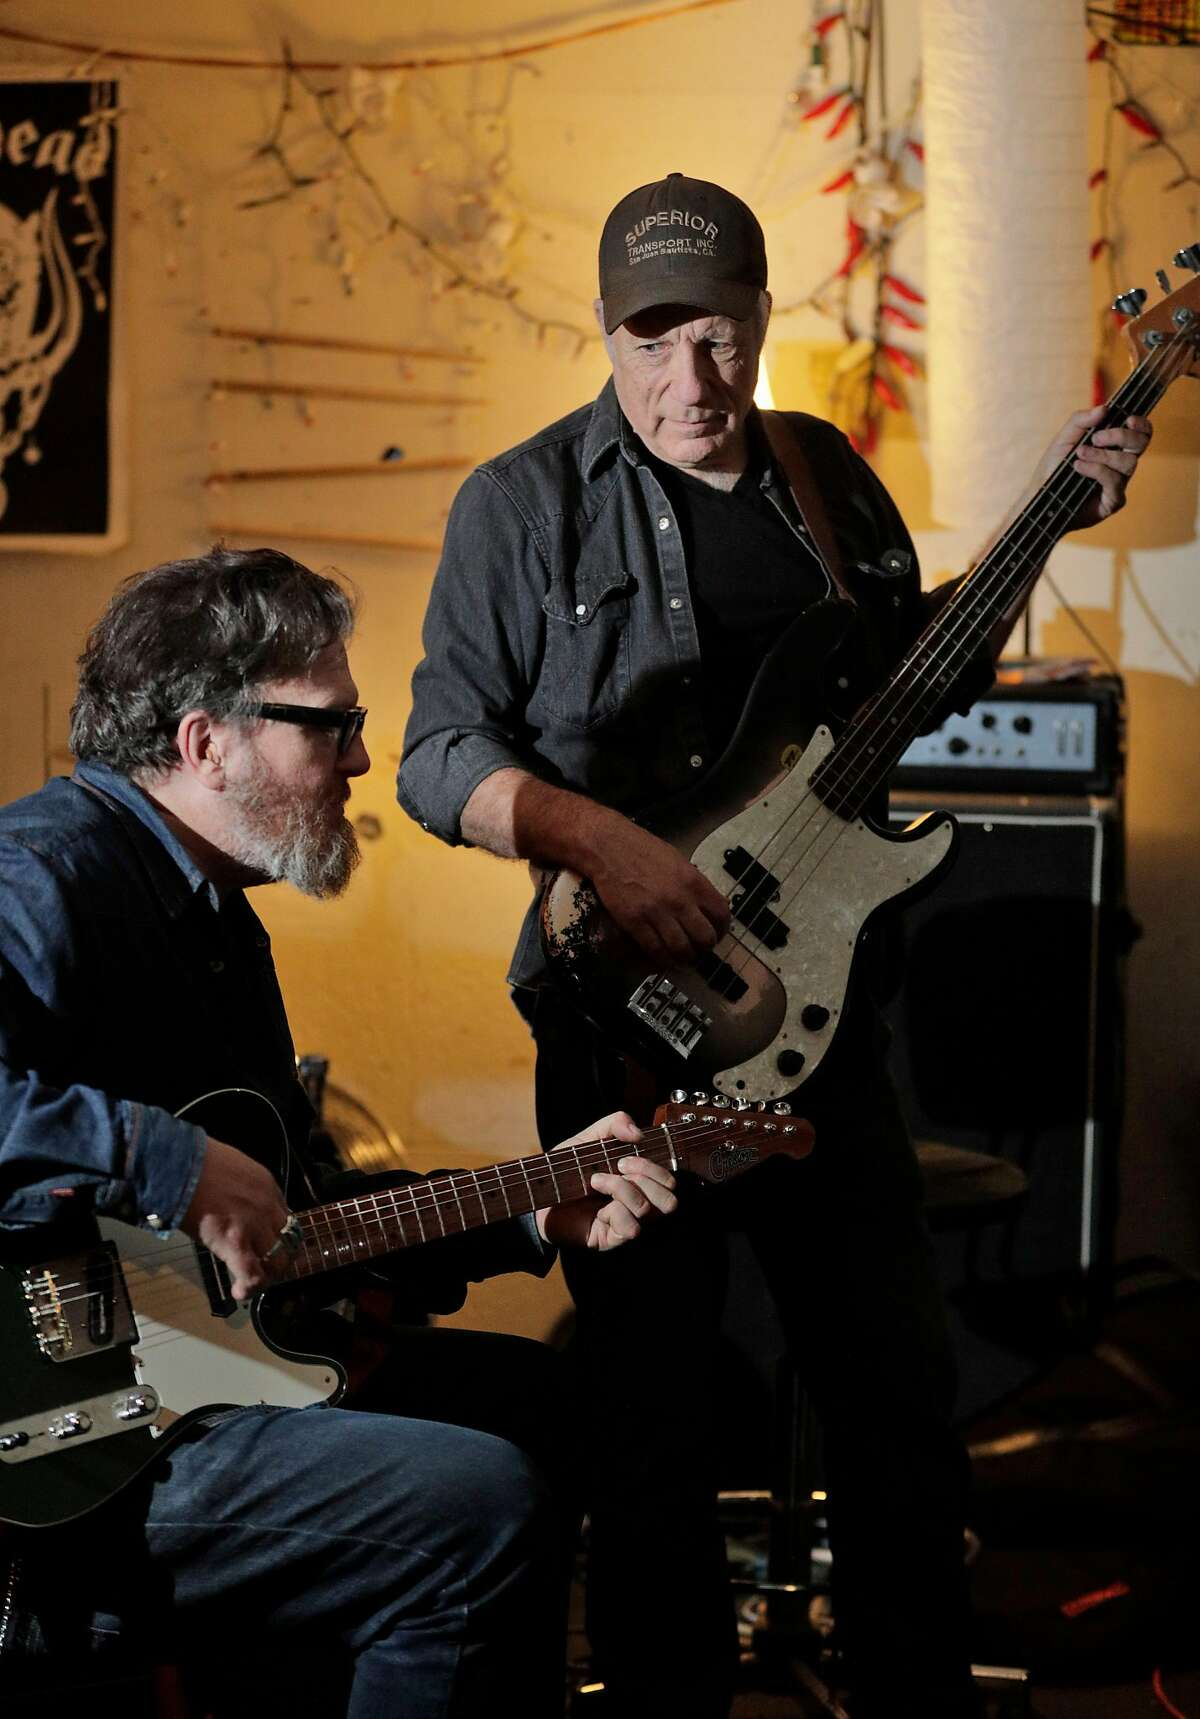 """Musicians, from left, Tom Heyman, left, and Maurice Tani, rehearing for """"Tribute for Ron Loney,"""" in San Francisco, Calif., on Thursday, February 20, 2020. Musicians fear that AB5, California's new gig-work law, will demolish their industry. We are photographing (who should be in the photo as well). We want a feeling of musicians rehearsing."""